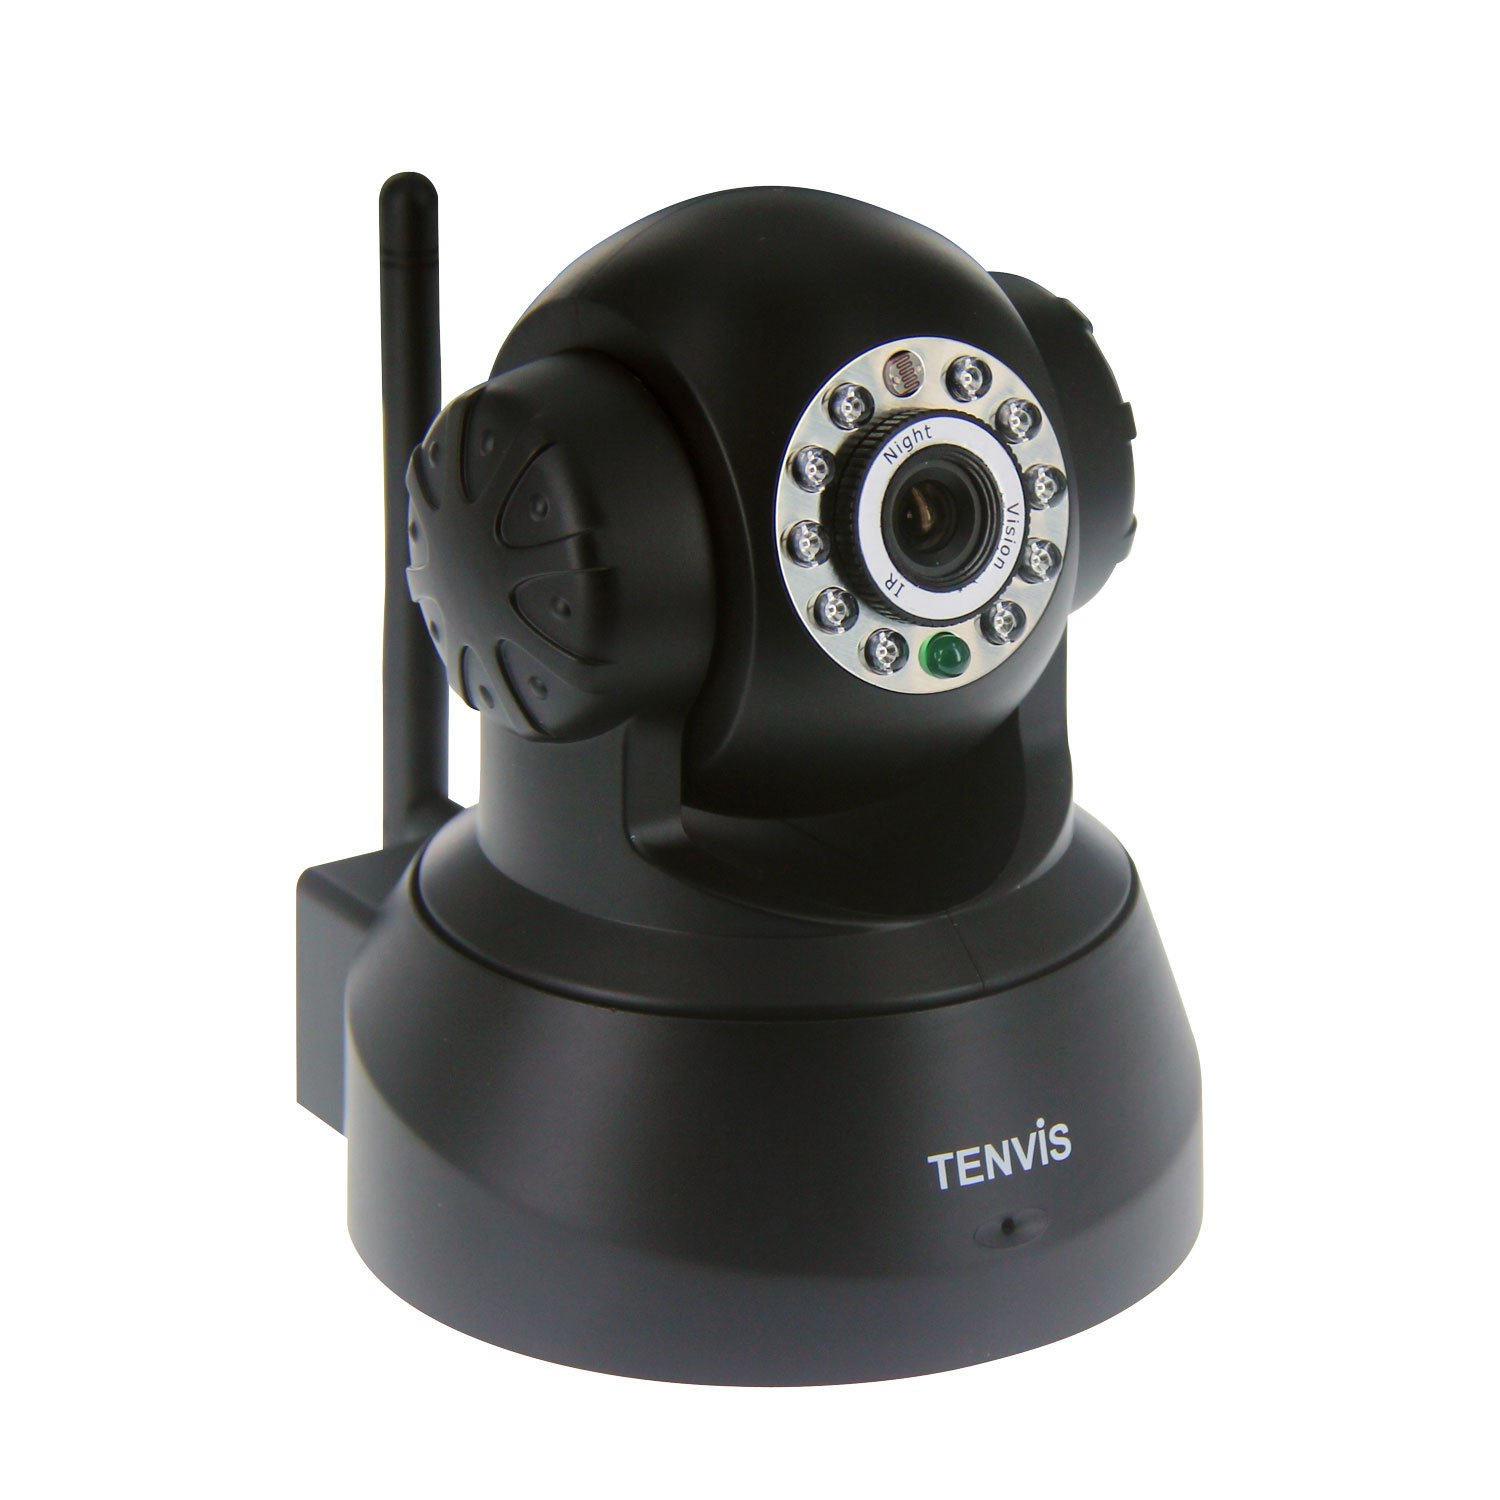 TENVIS JPT3815W Wireless IP Pan/Tilt/ Night Vision Internet Surveillance Camera Built-in Microphone With Phone remote monitoring support($45.99)